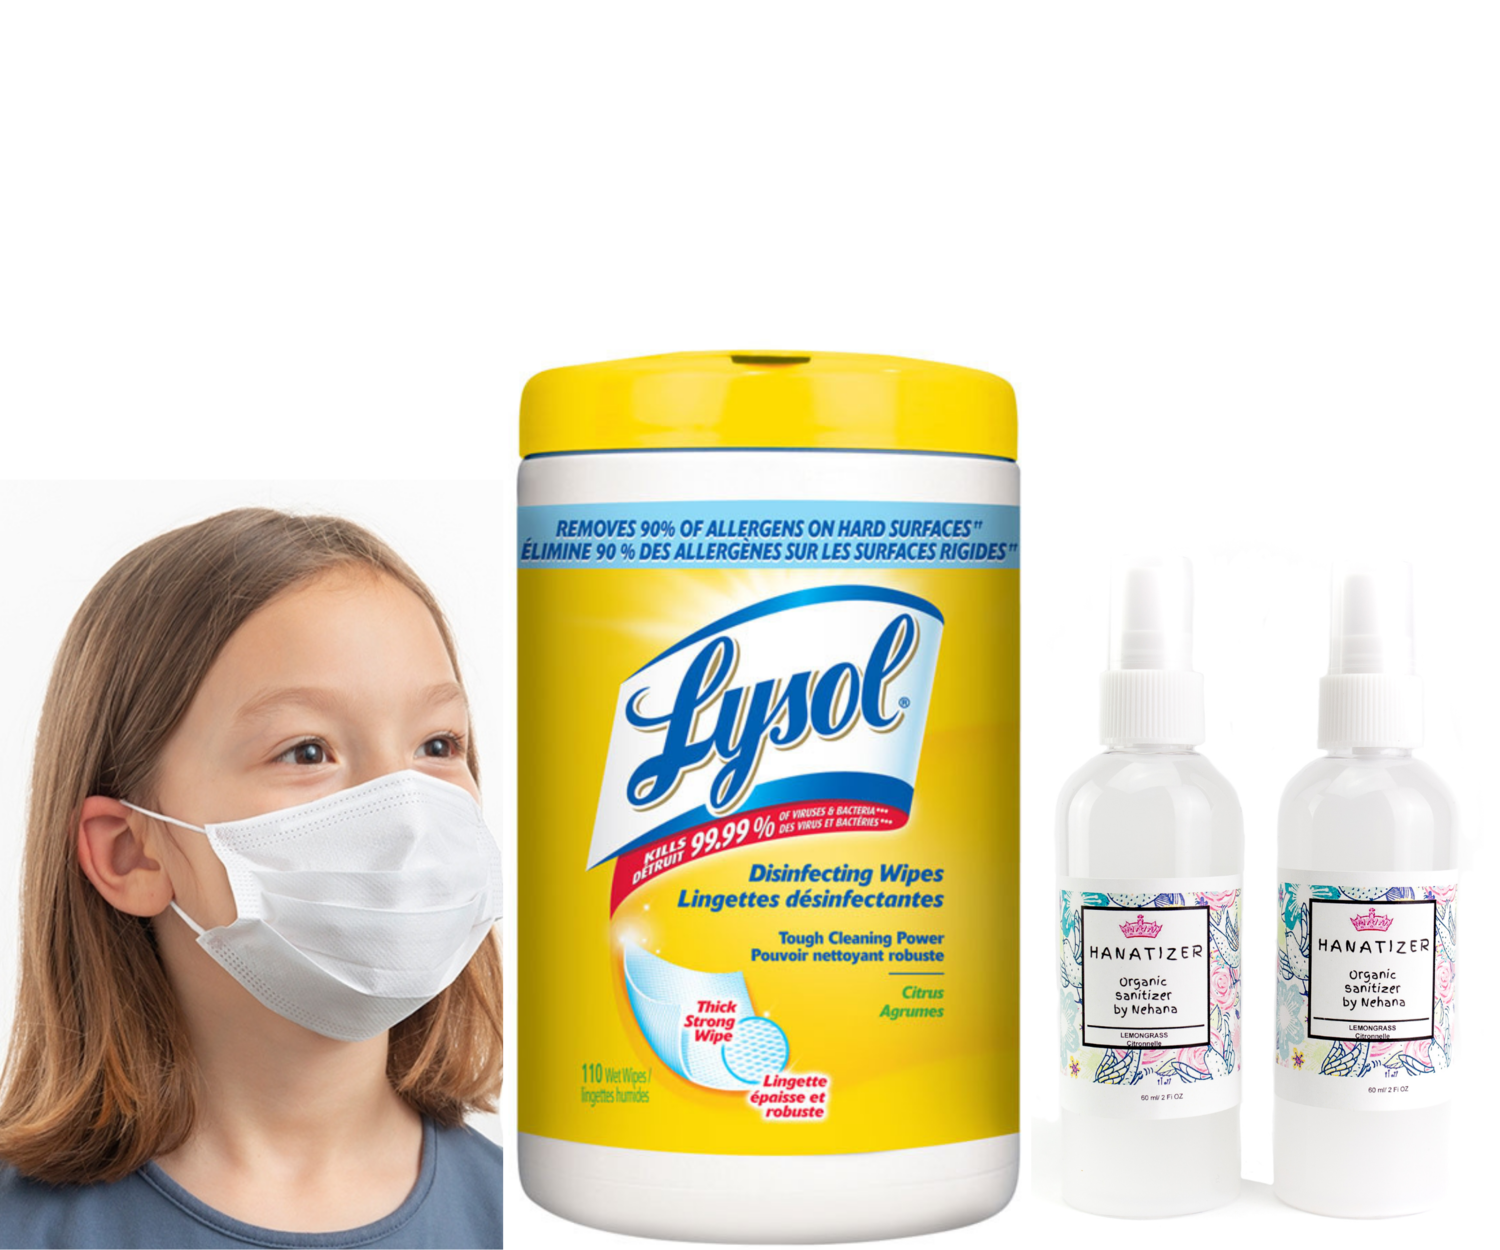 Lysol Disinfectant wipes 80 Count | 50 Kids Face Masks | 2 x Kids Aloe Vera Hand Santizers Spray 100ml